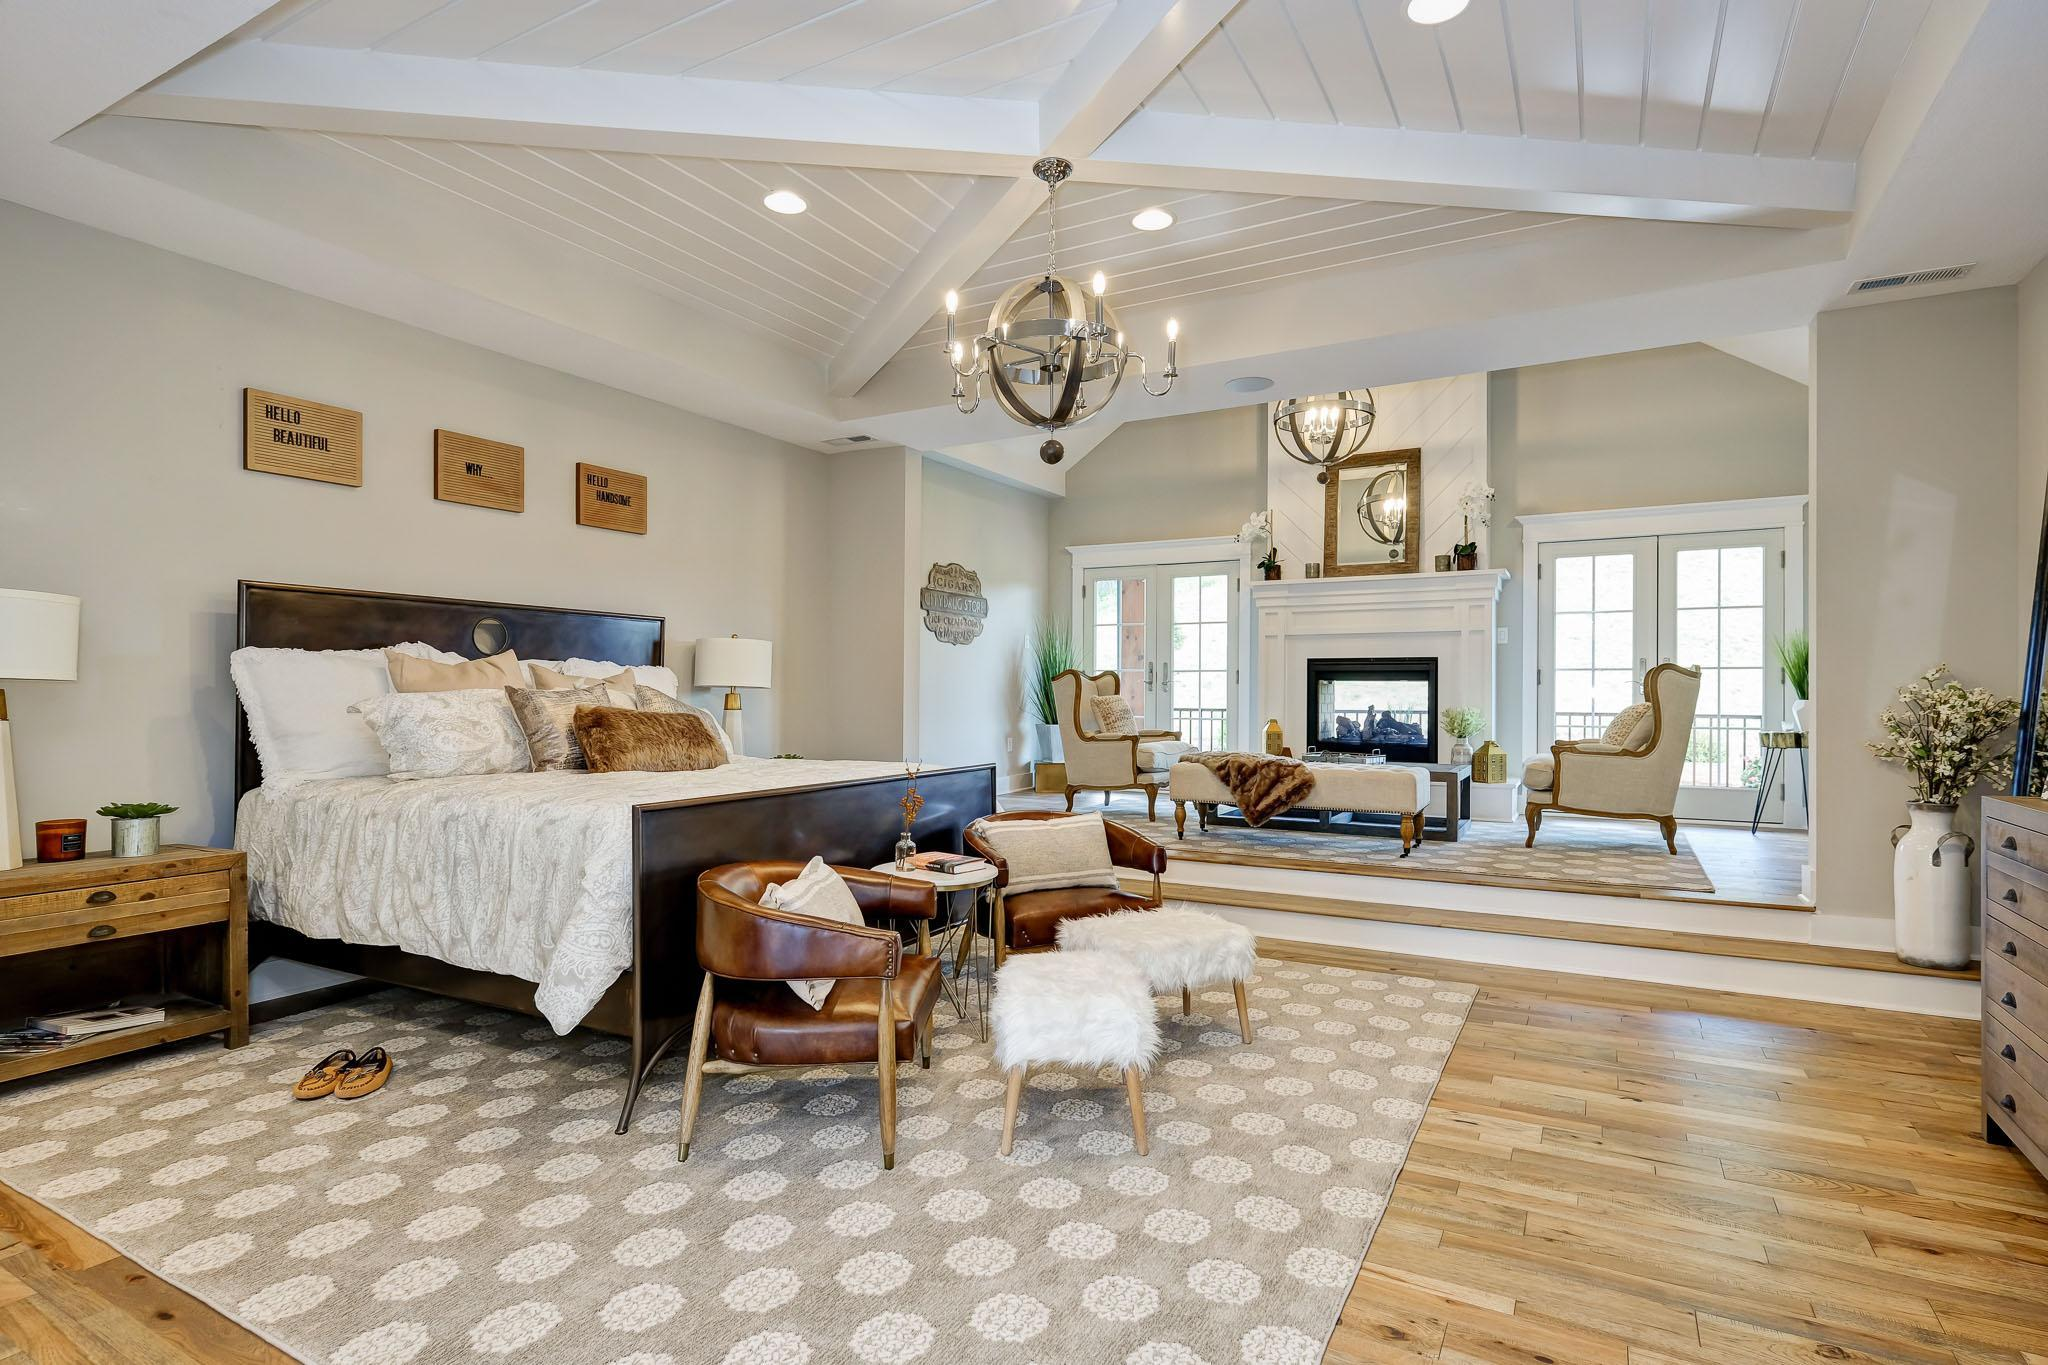 Bedroom featured in the Nantucket By Infinity Custom Homes in Pittsburgh, PA